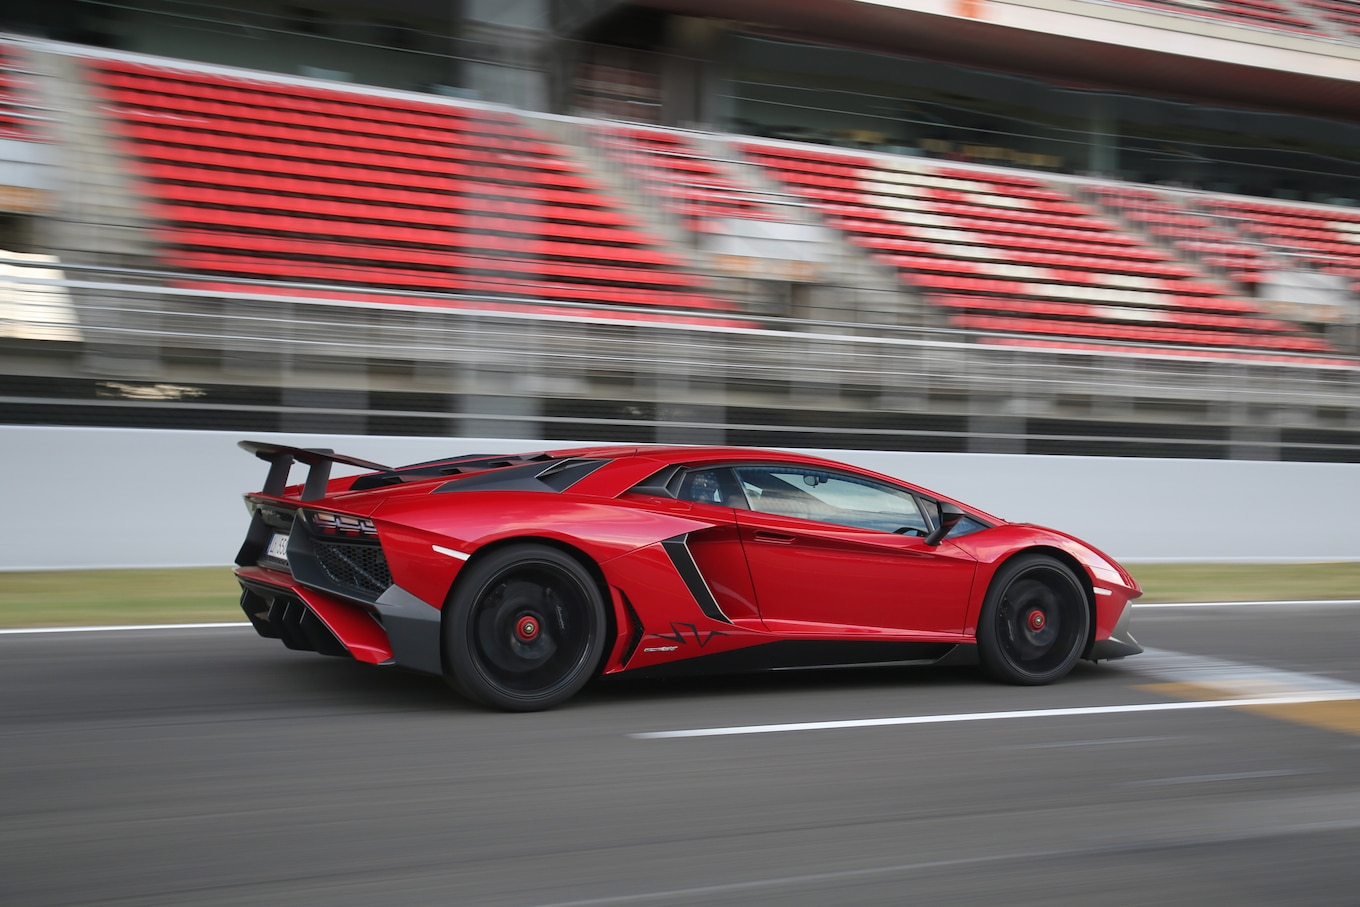 Car Money Watch Wallpaper 2016 Lamborghini Aventador Reviews Research Aventador